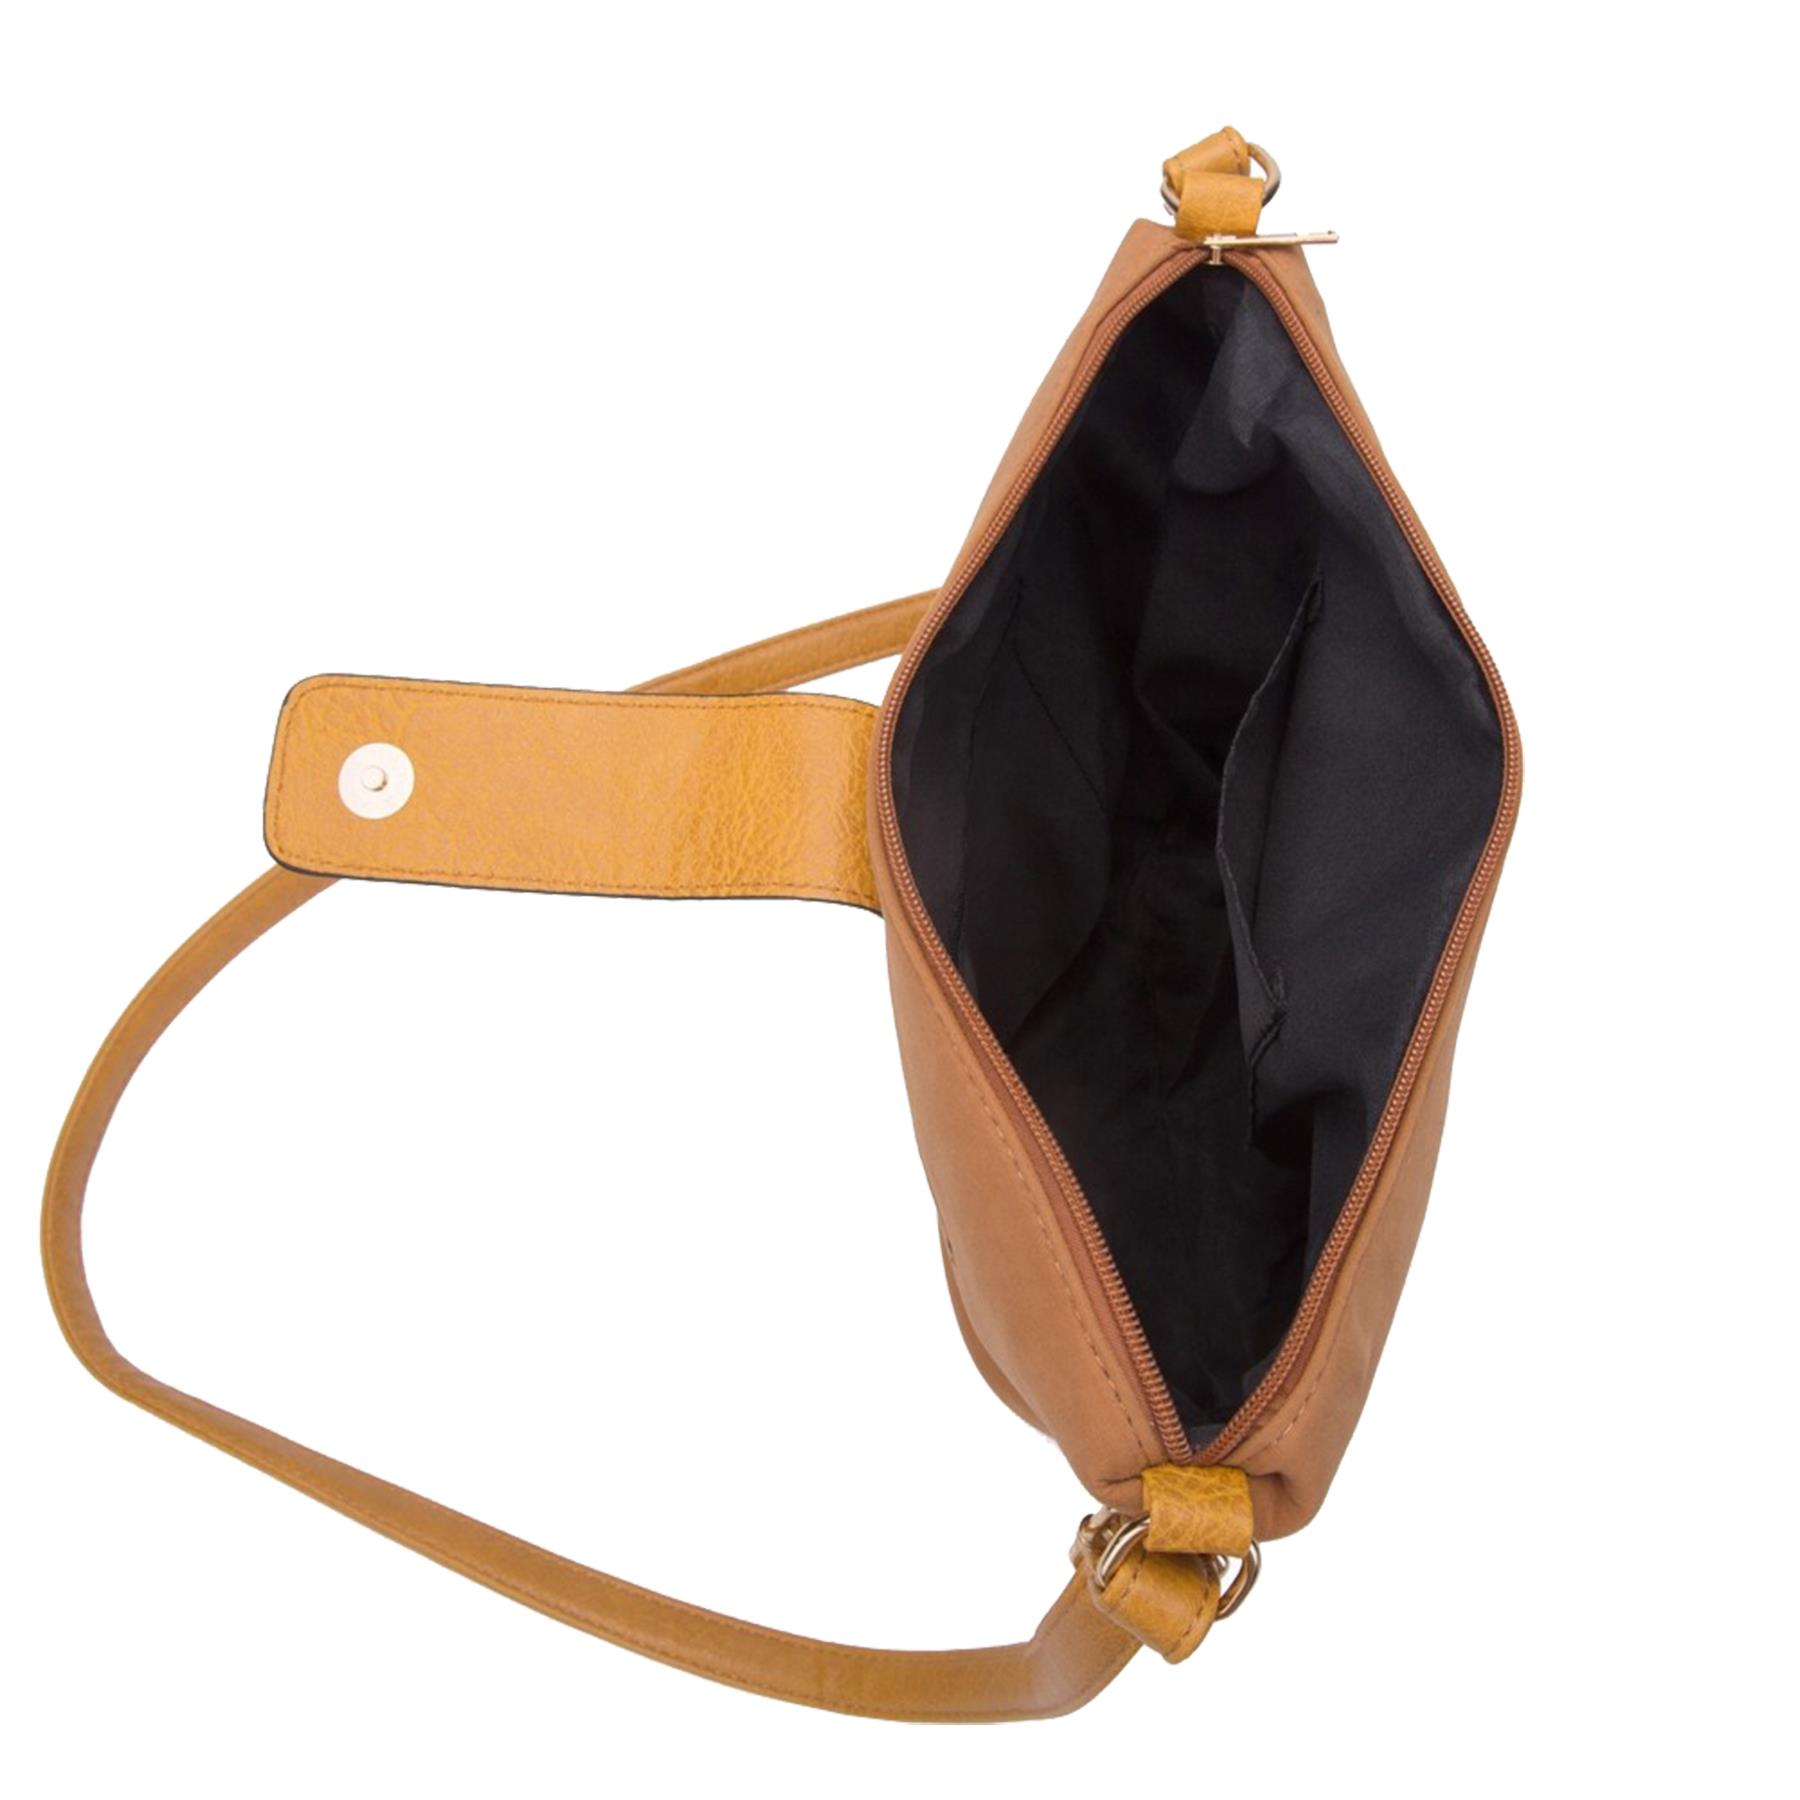 New-Ladies-Two-Toned-Faux-Leather-Fashion-Shoulder-Cross-Body-Bag thumbnail 13